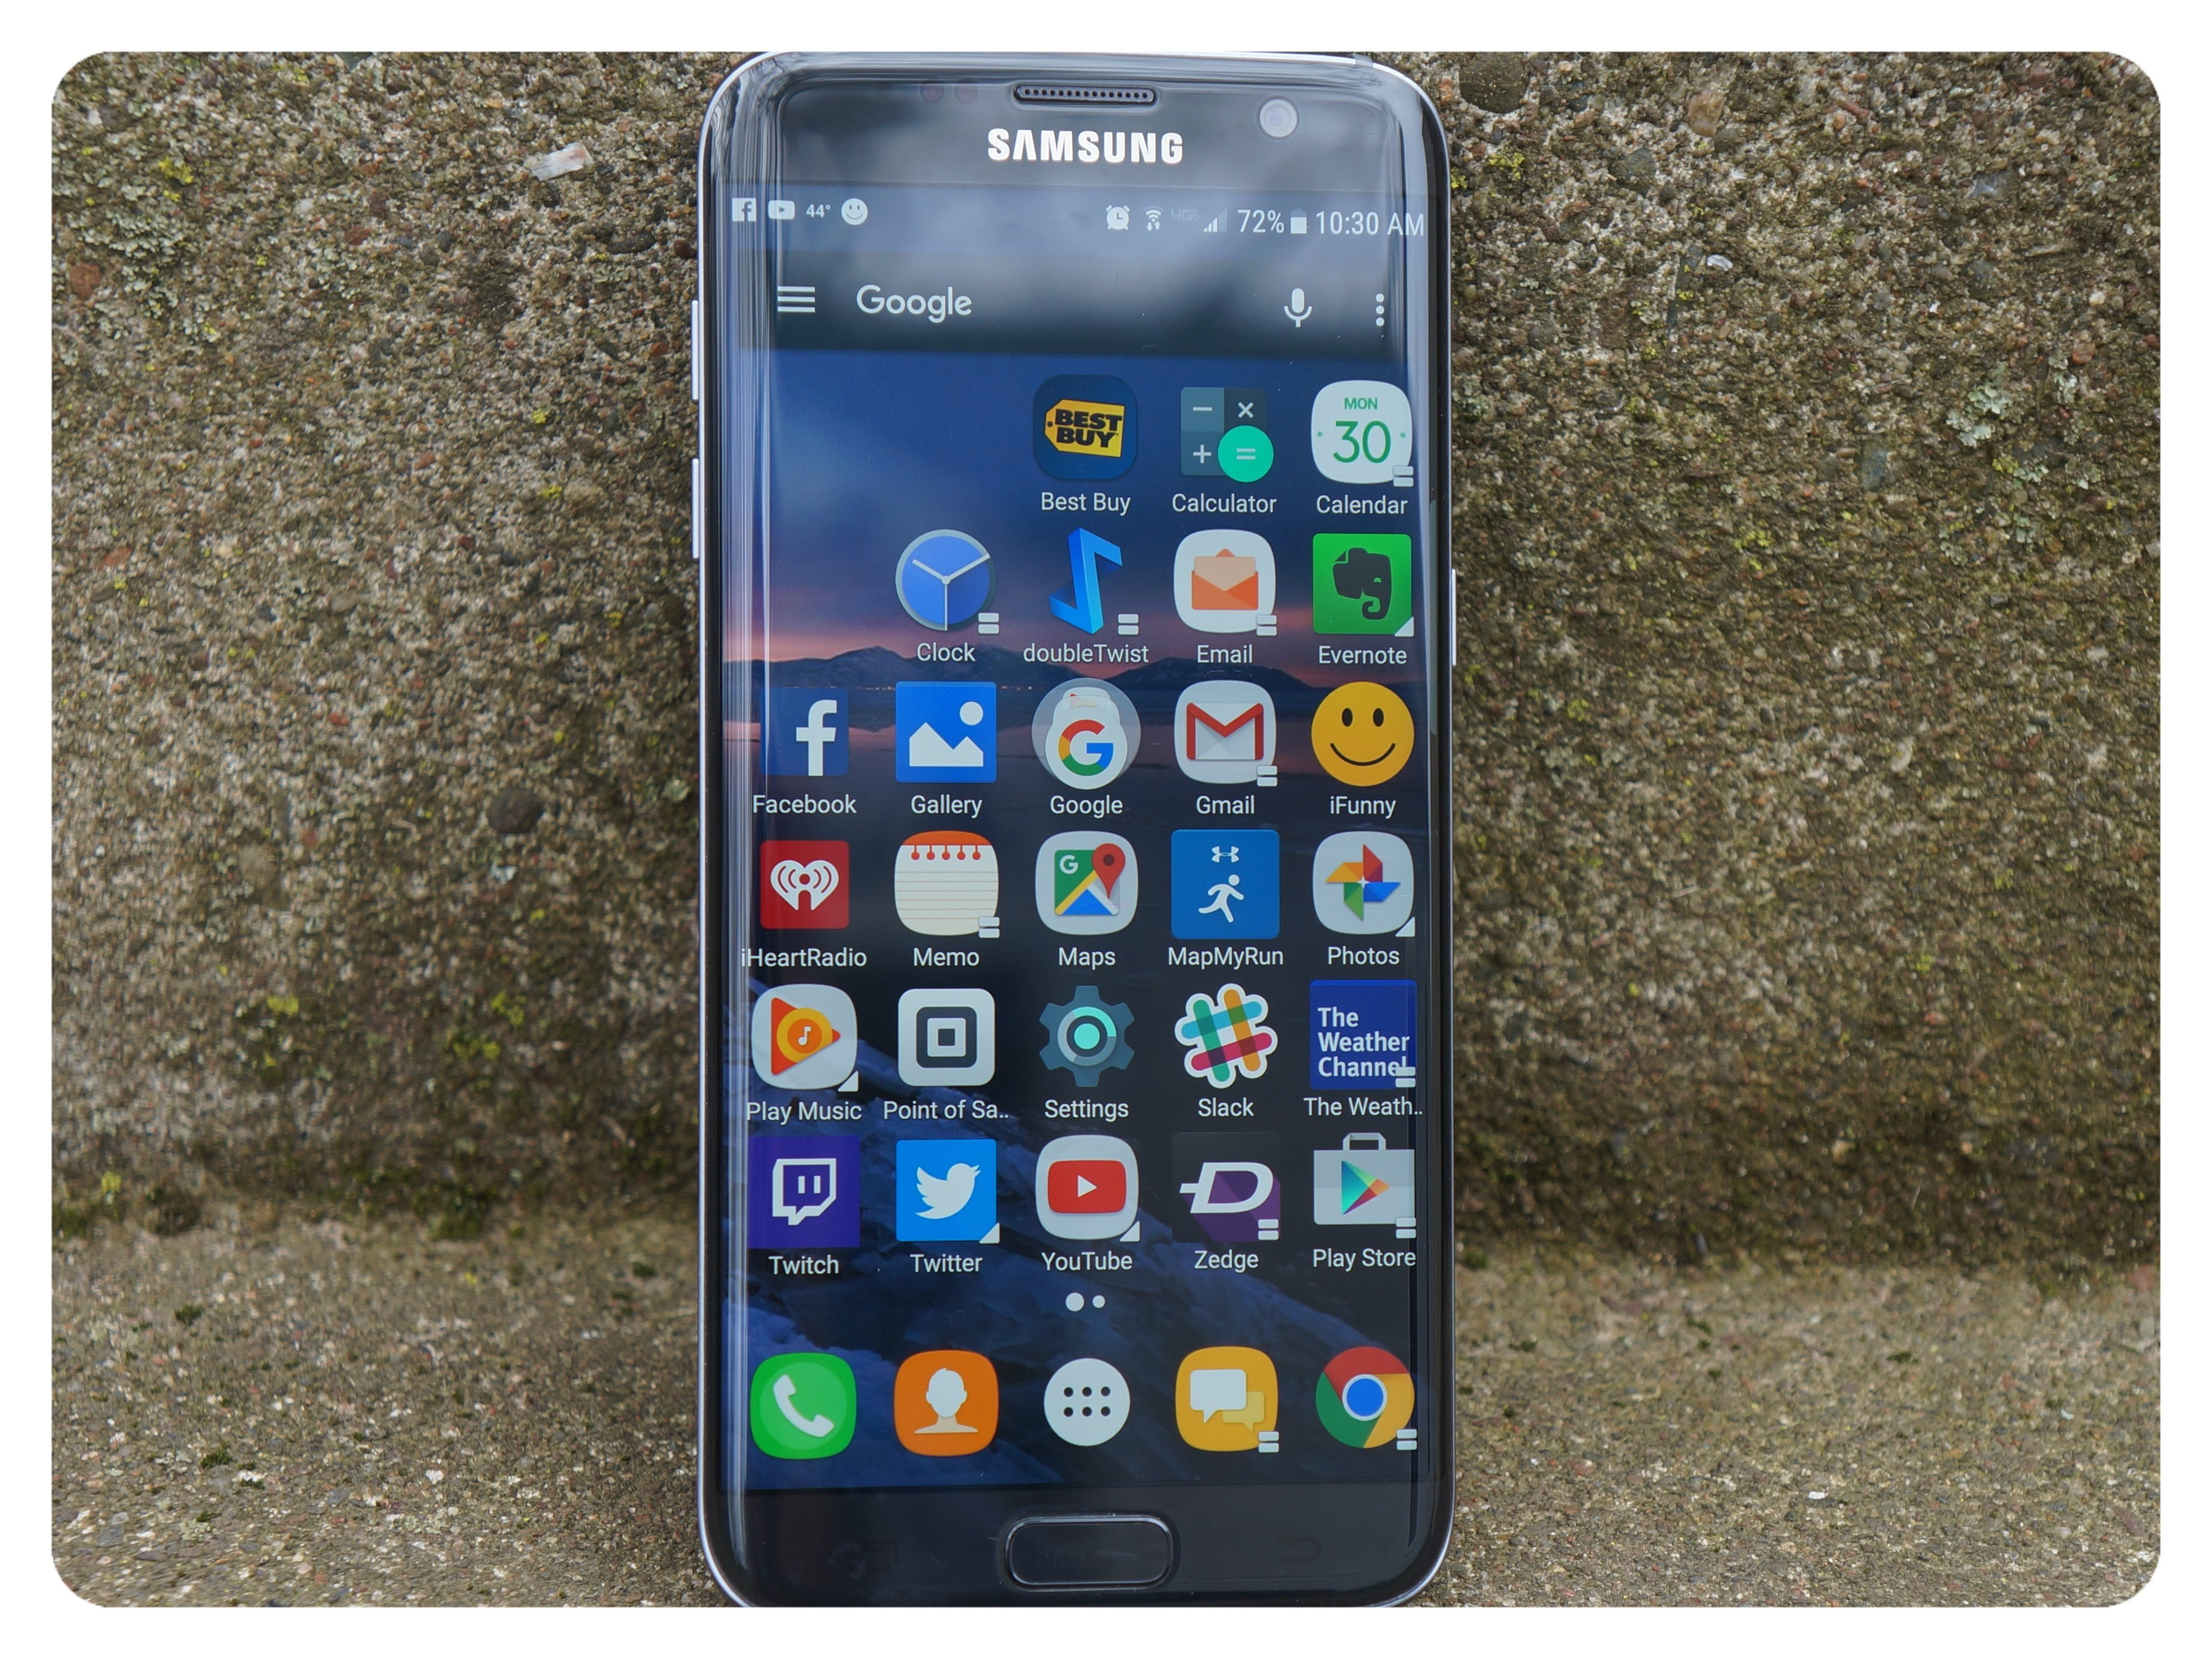 Samsung releases Galaxy S7 Android Oreo update